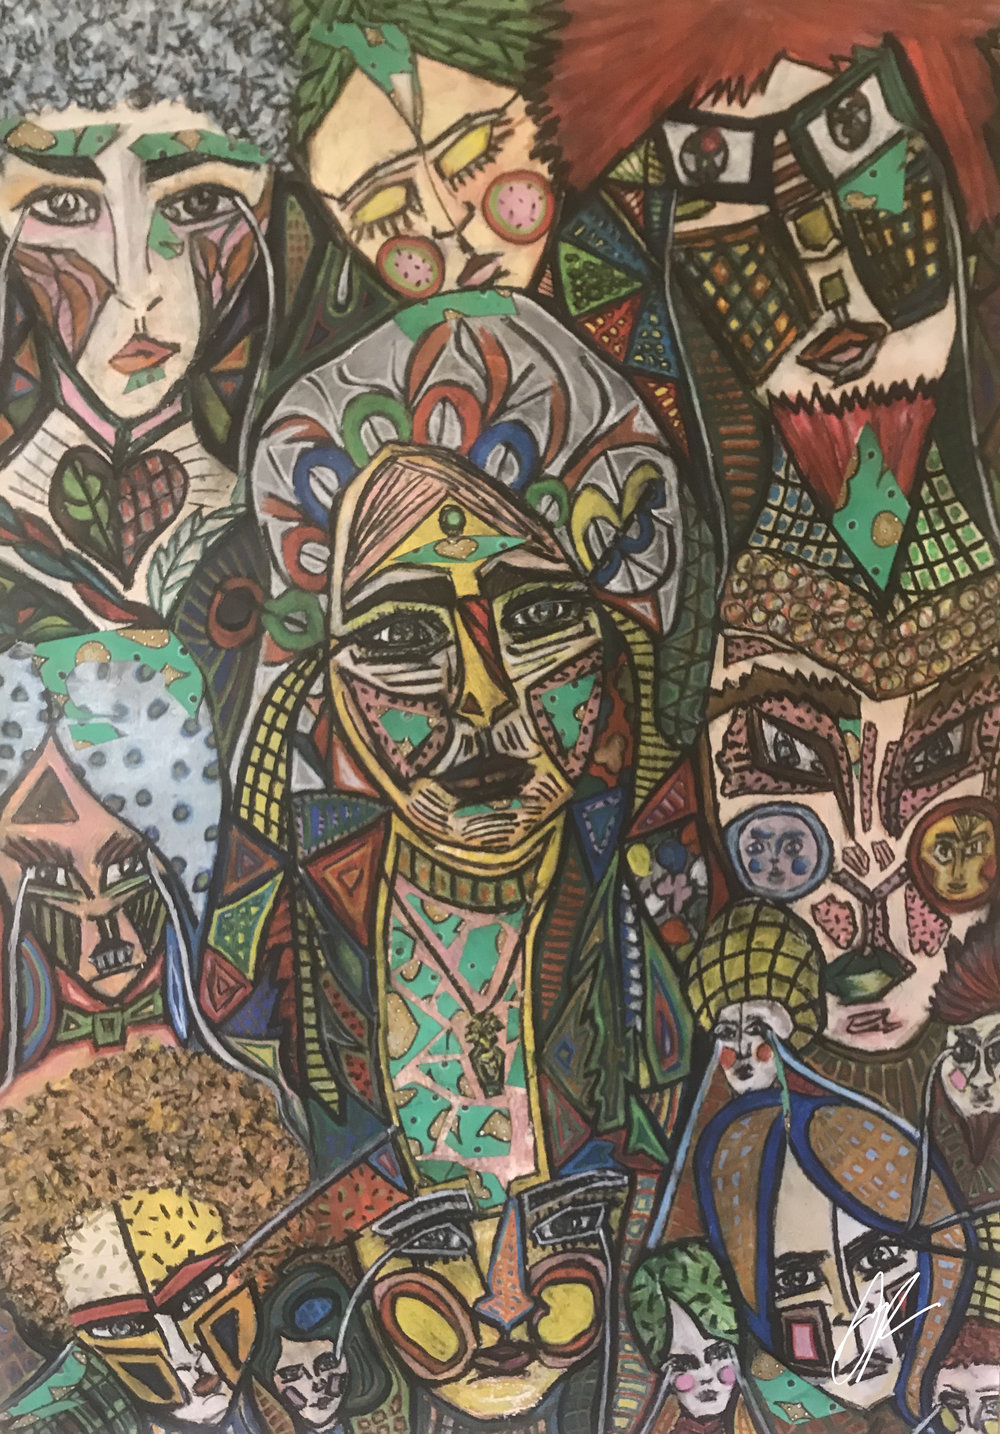 'Face to face'  by Sophia Parun. Click   here   to buy this work.